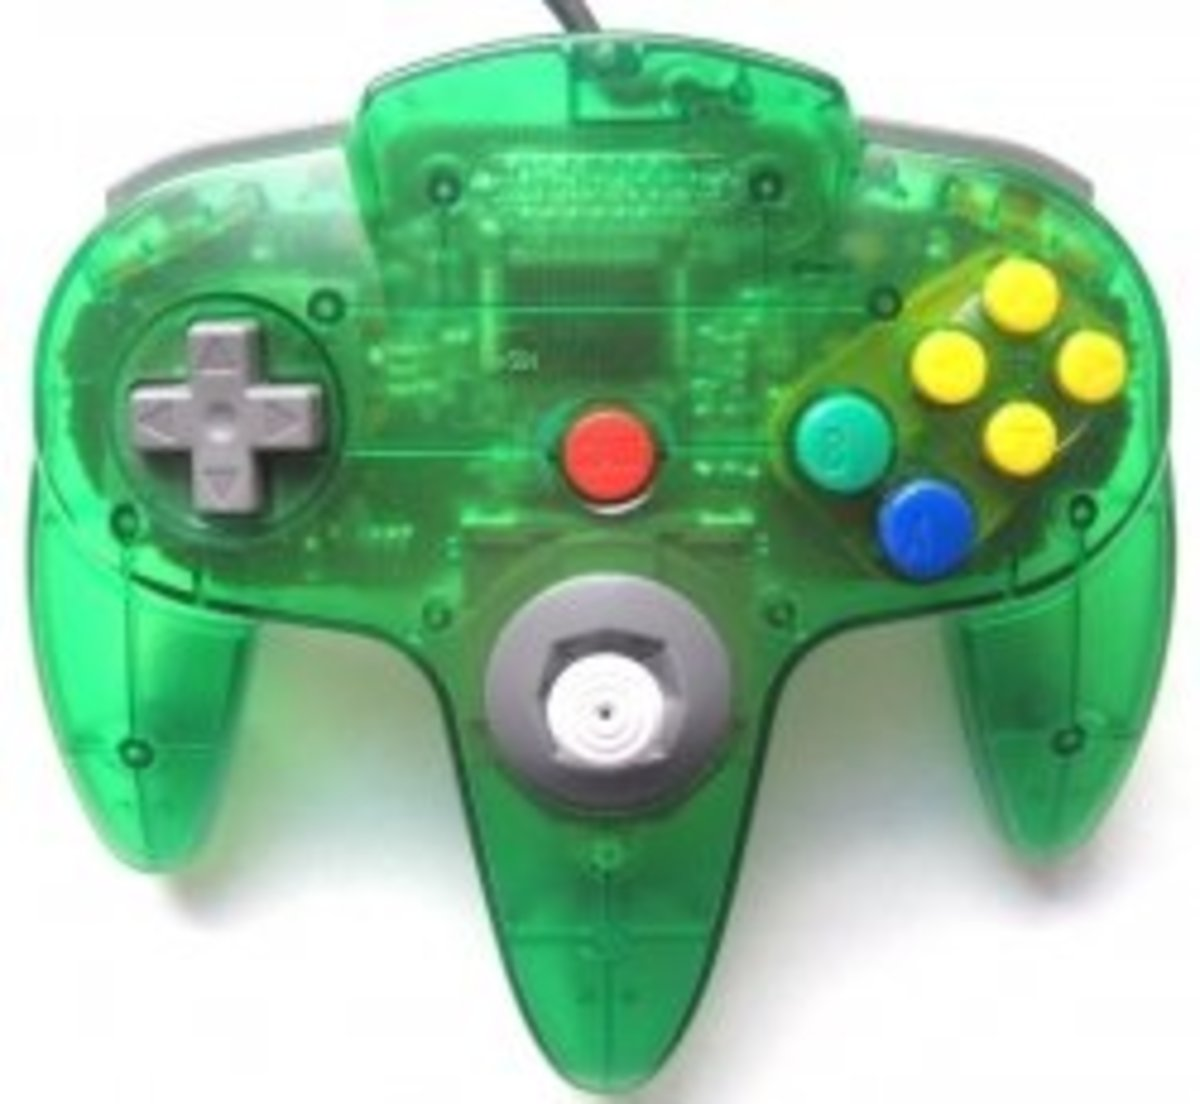 Nintendo 64 (N64) Controllers — All You Ever Wanted to Know